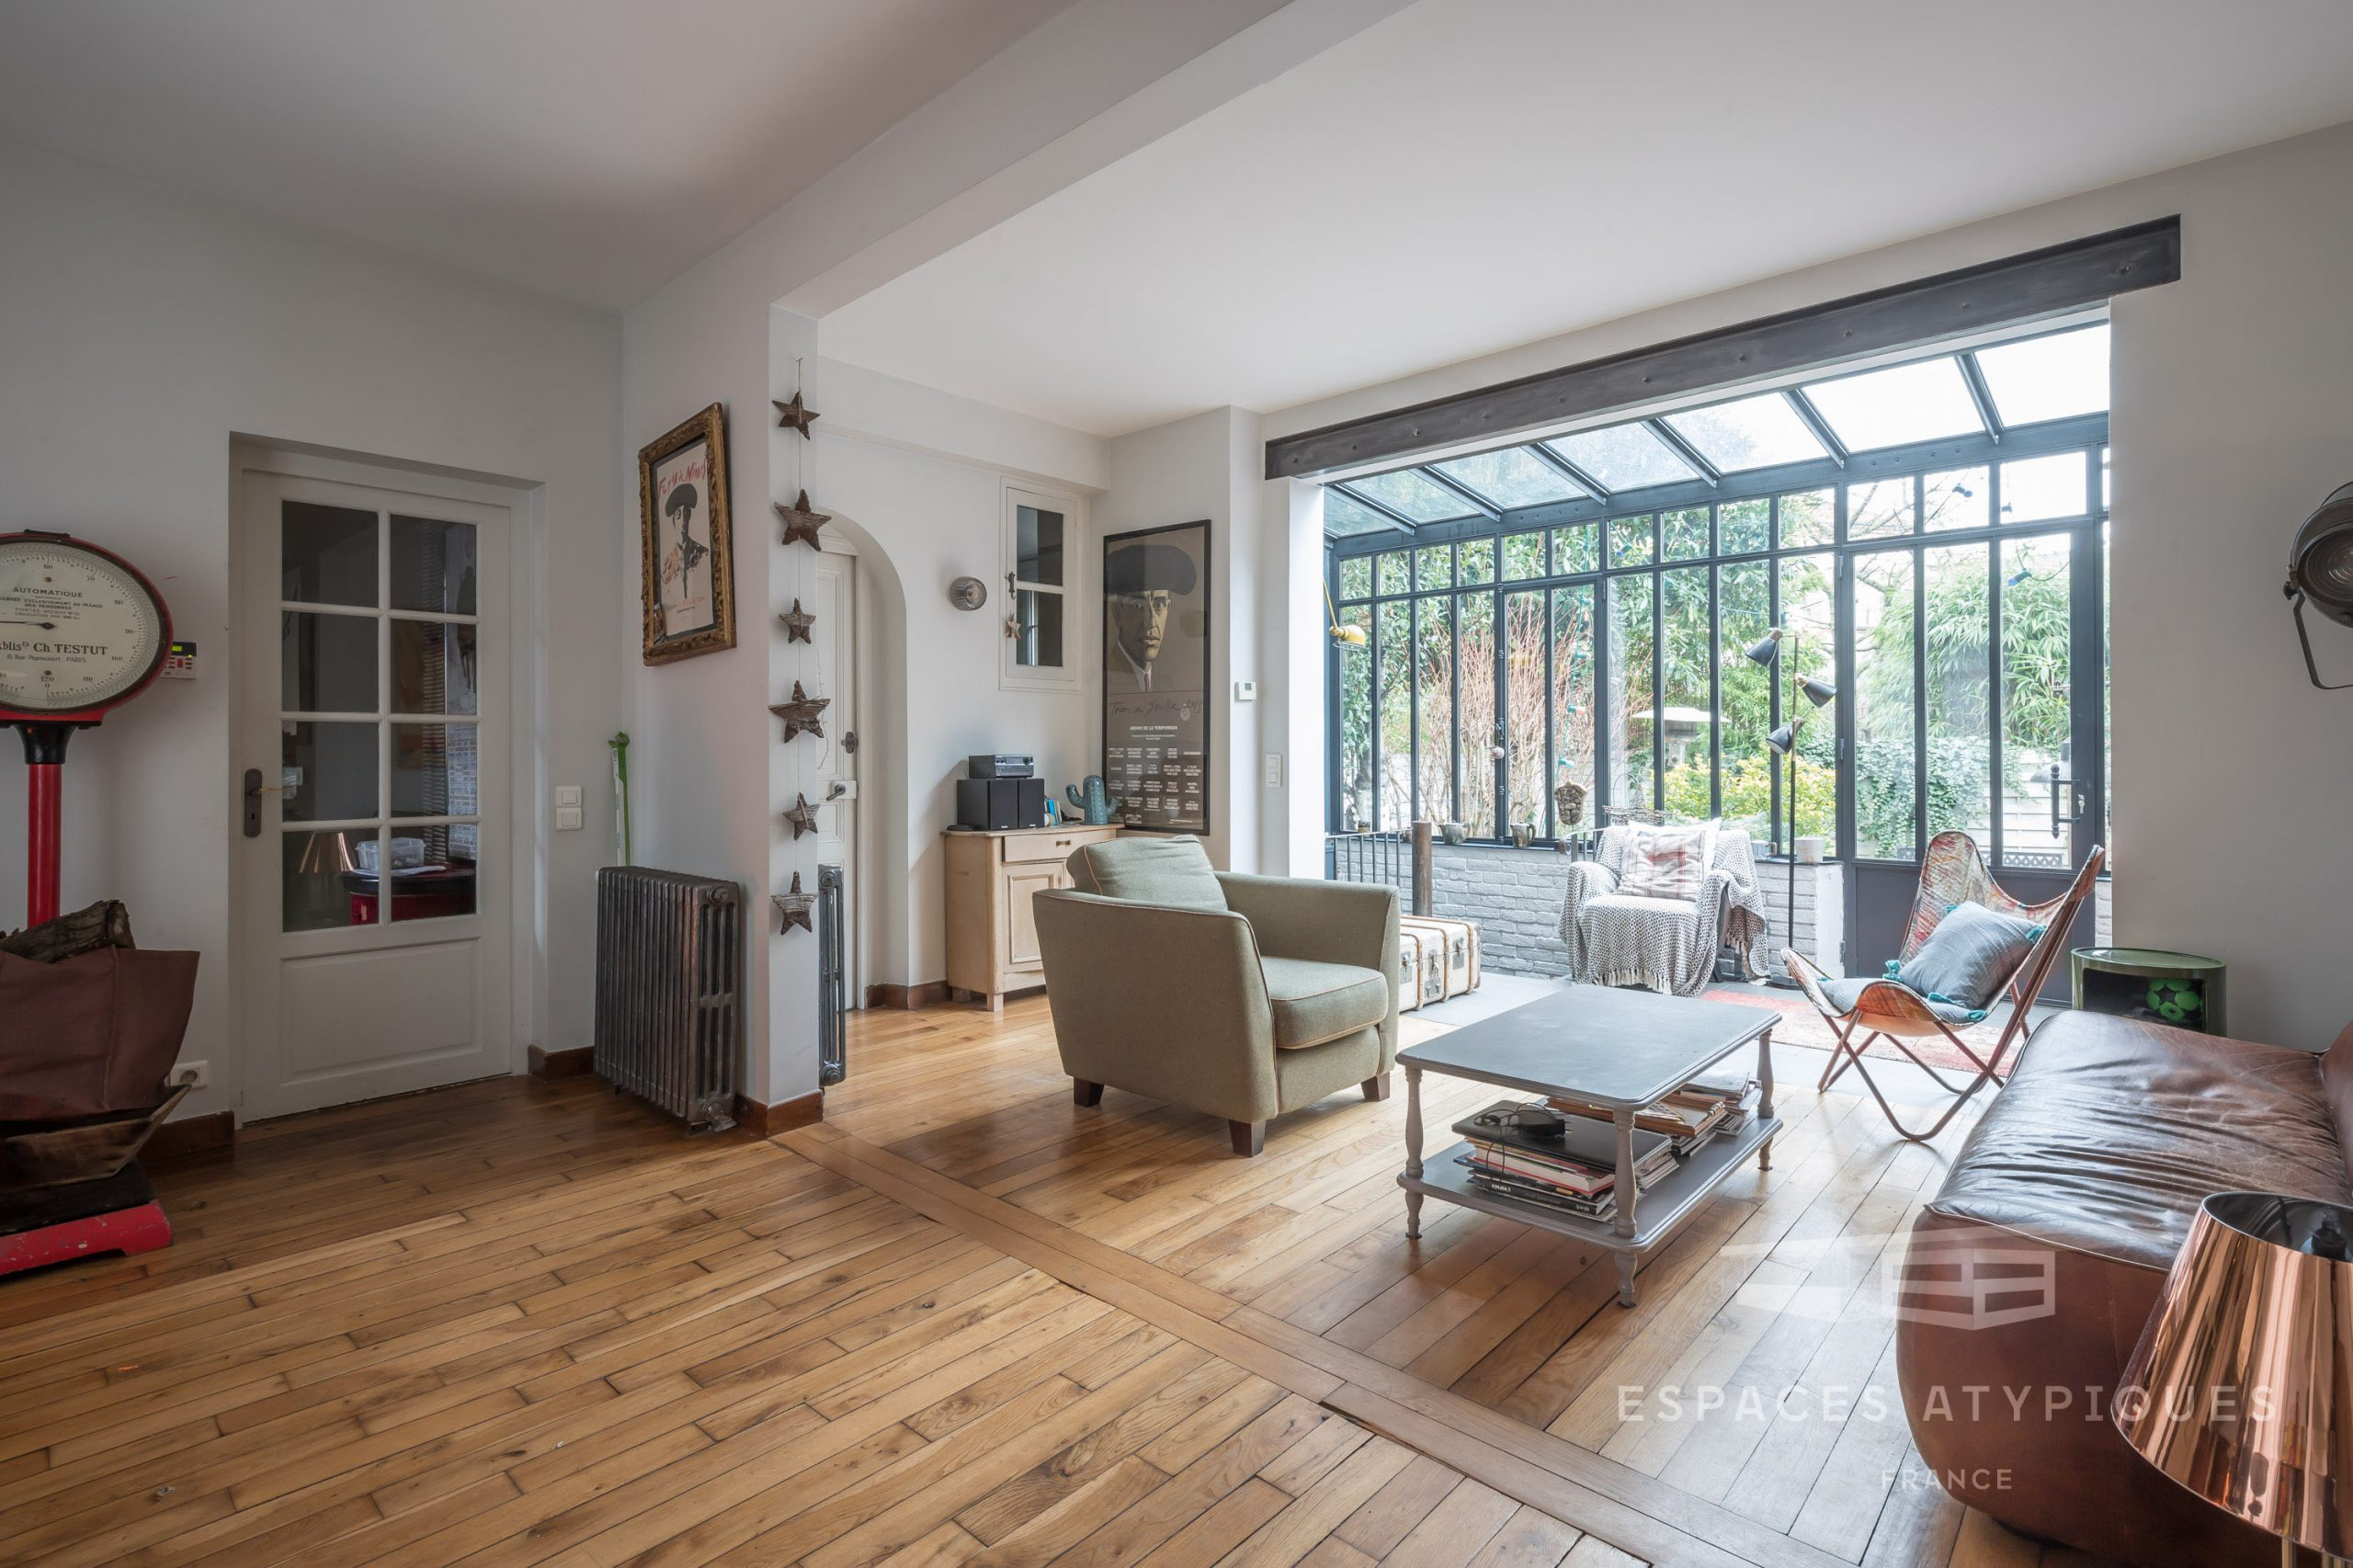 House With Glass Roof And Garden In Bagnolet 93170 à Verriere Jardin